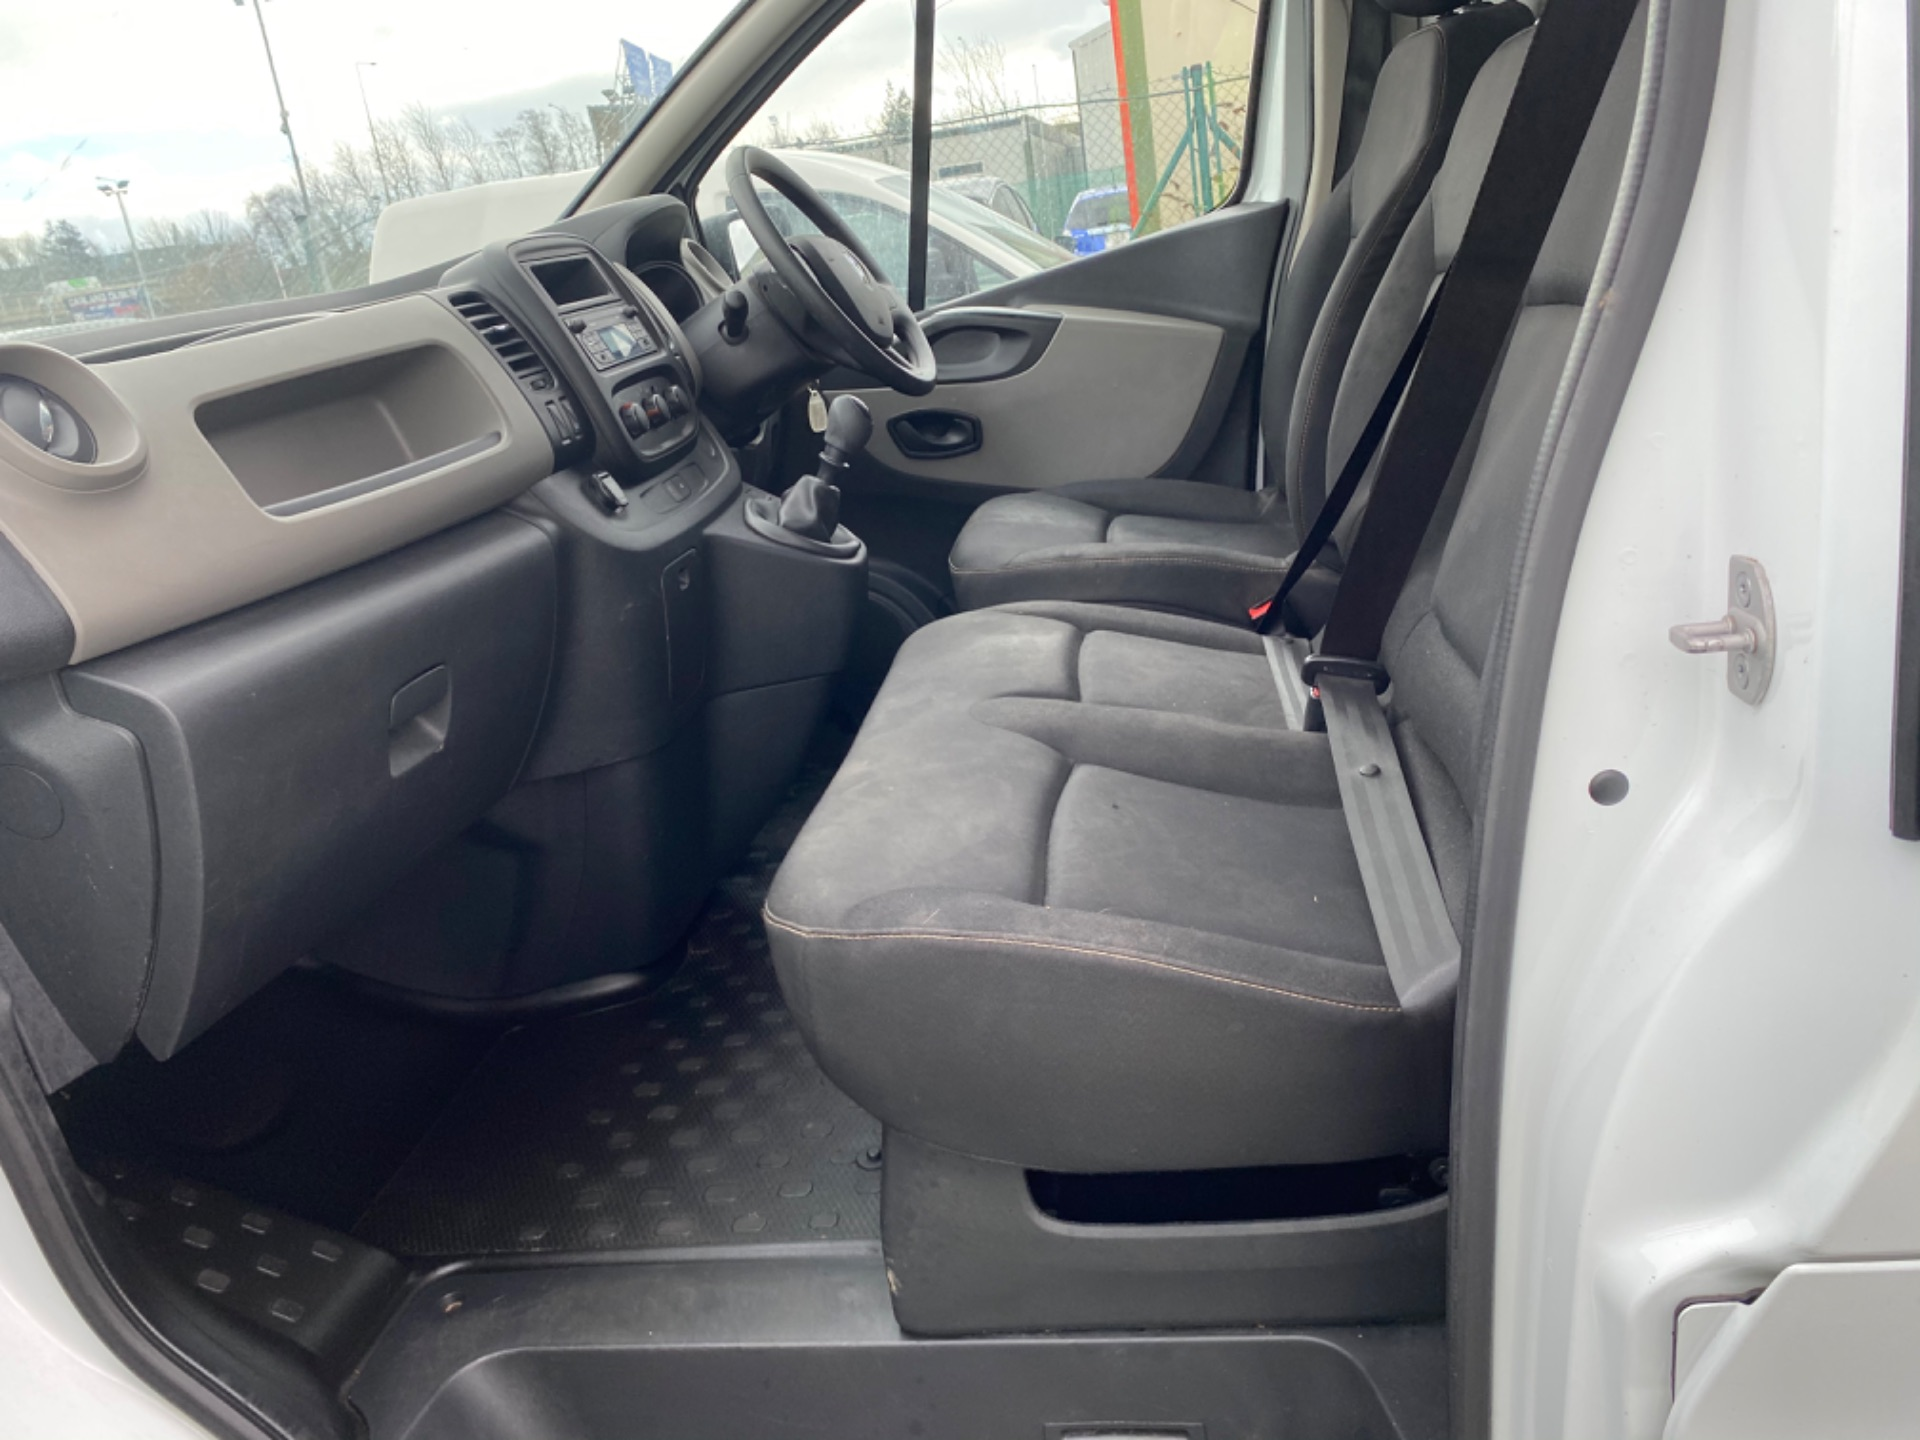 2017 Renault Trafic LL29 DCI 120 Business 3DR (172D19328) Image 11